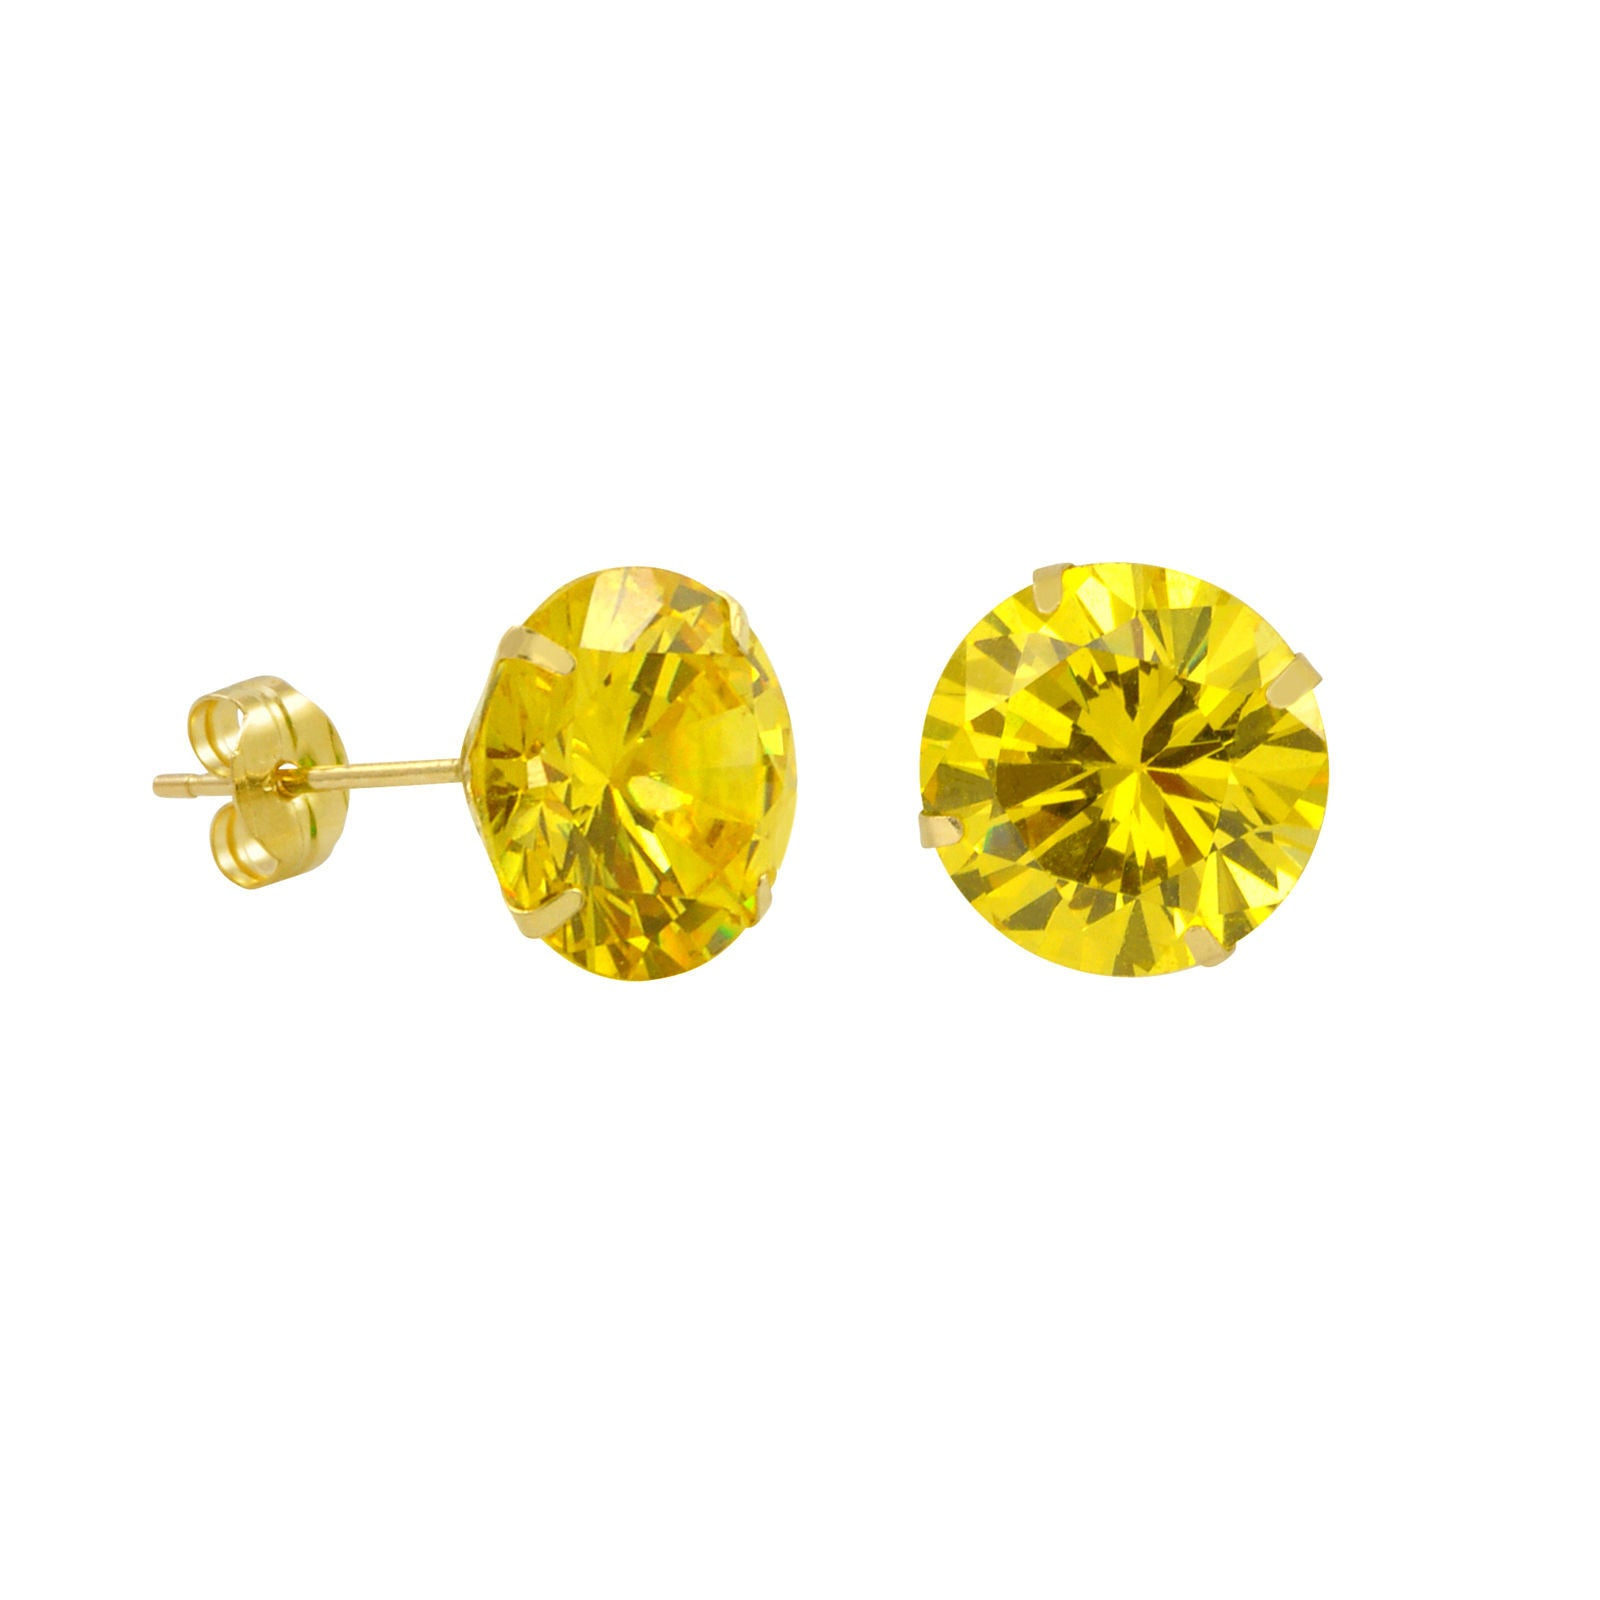 gold plated stud earrings silver set jewellery hexagonal citrine gem lrg by promise lbt gravestock laura